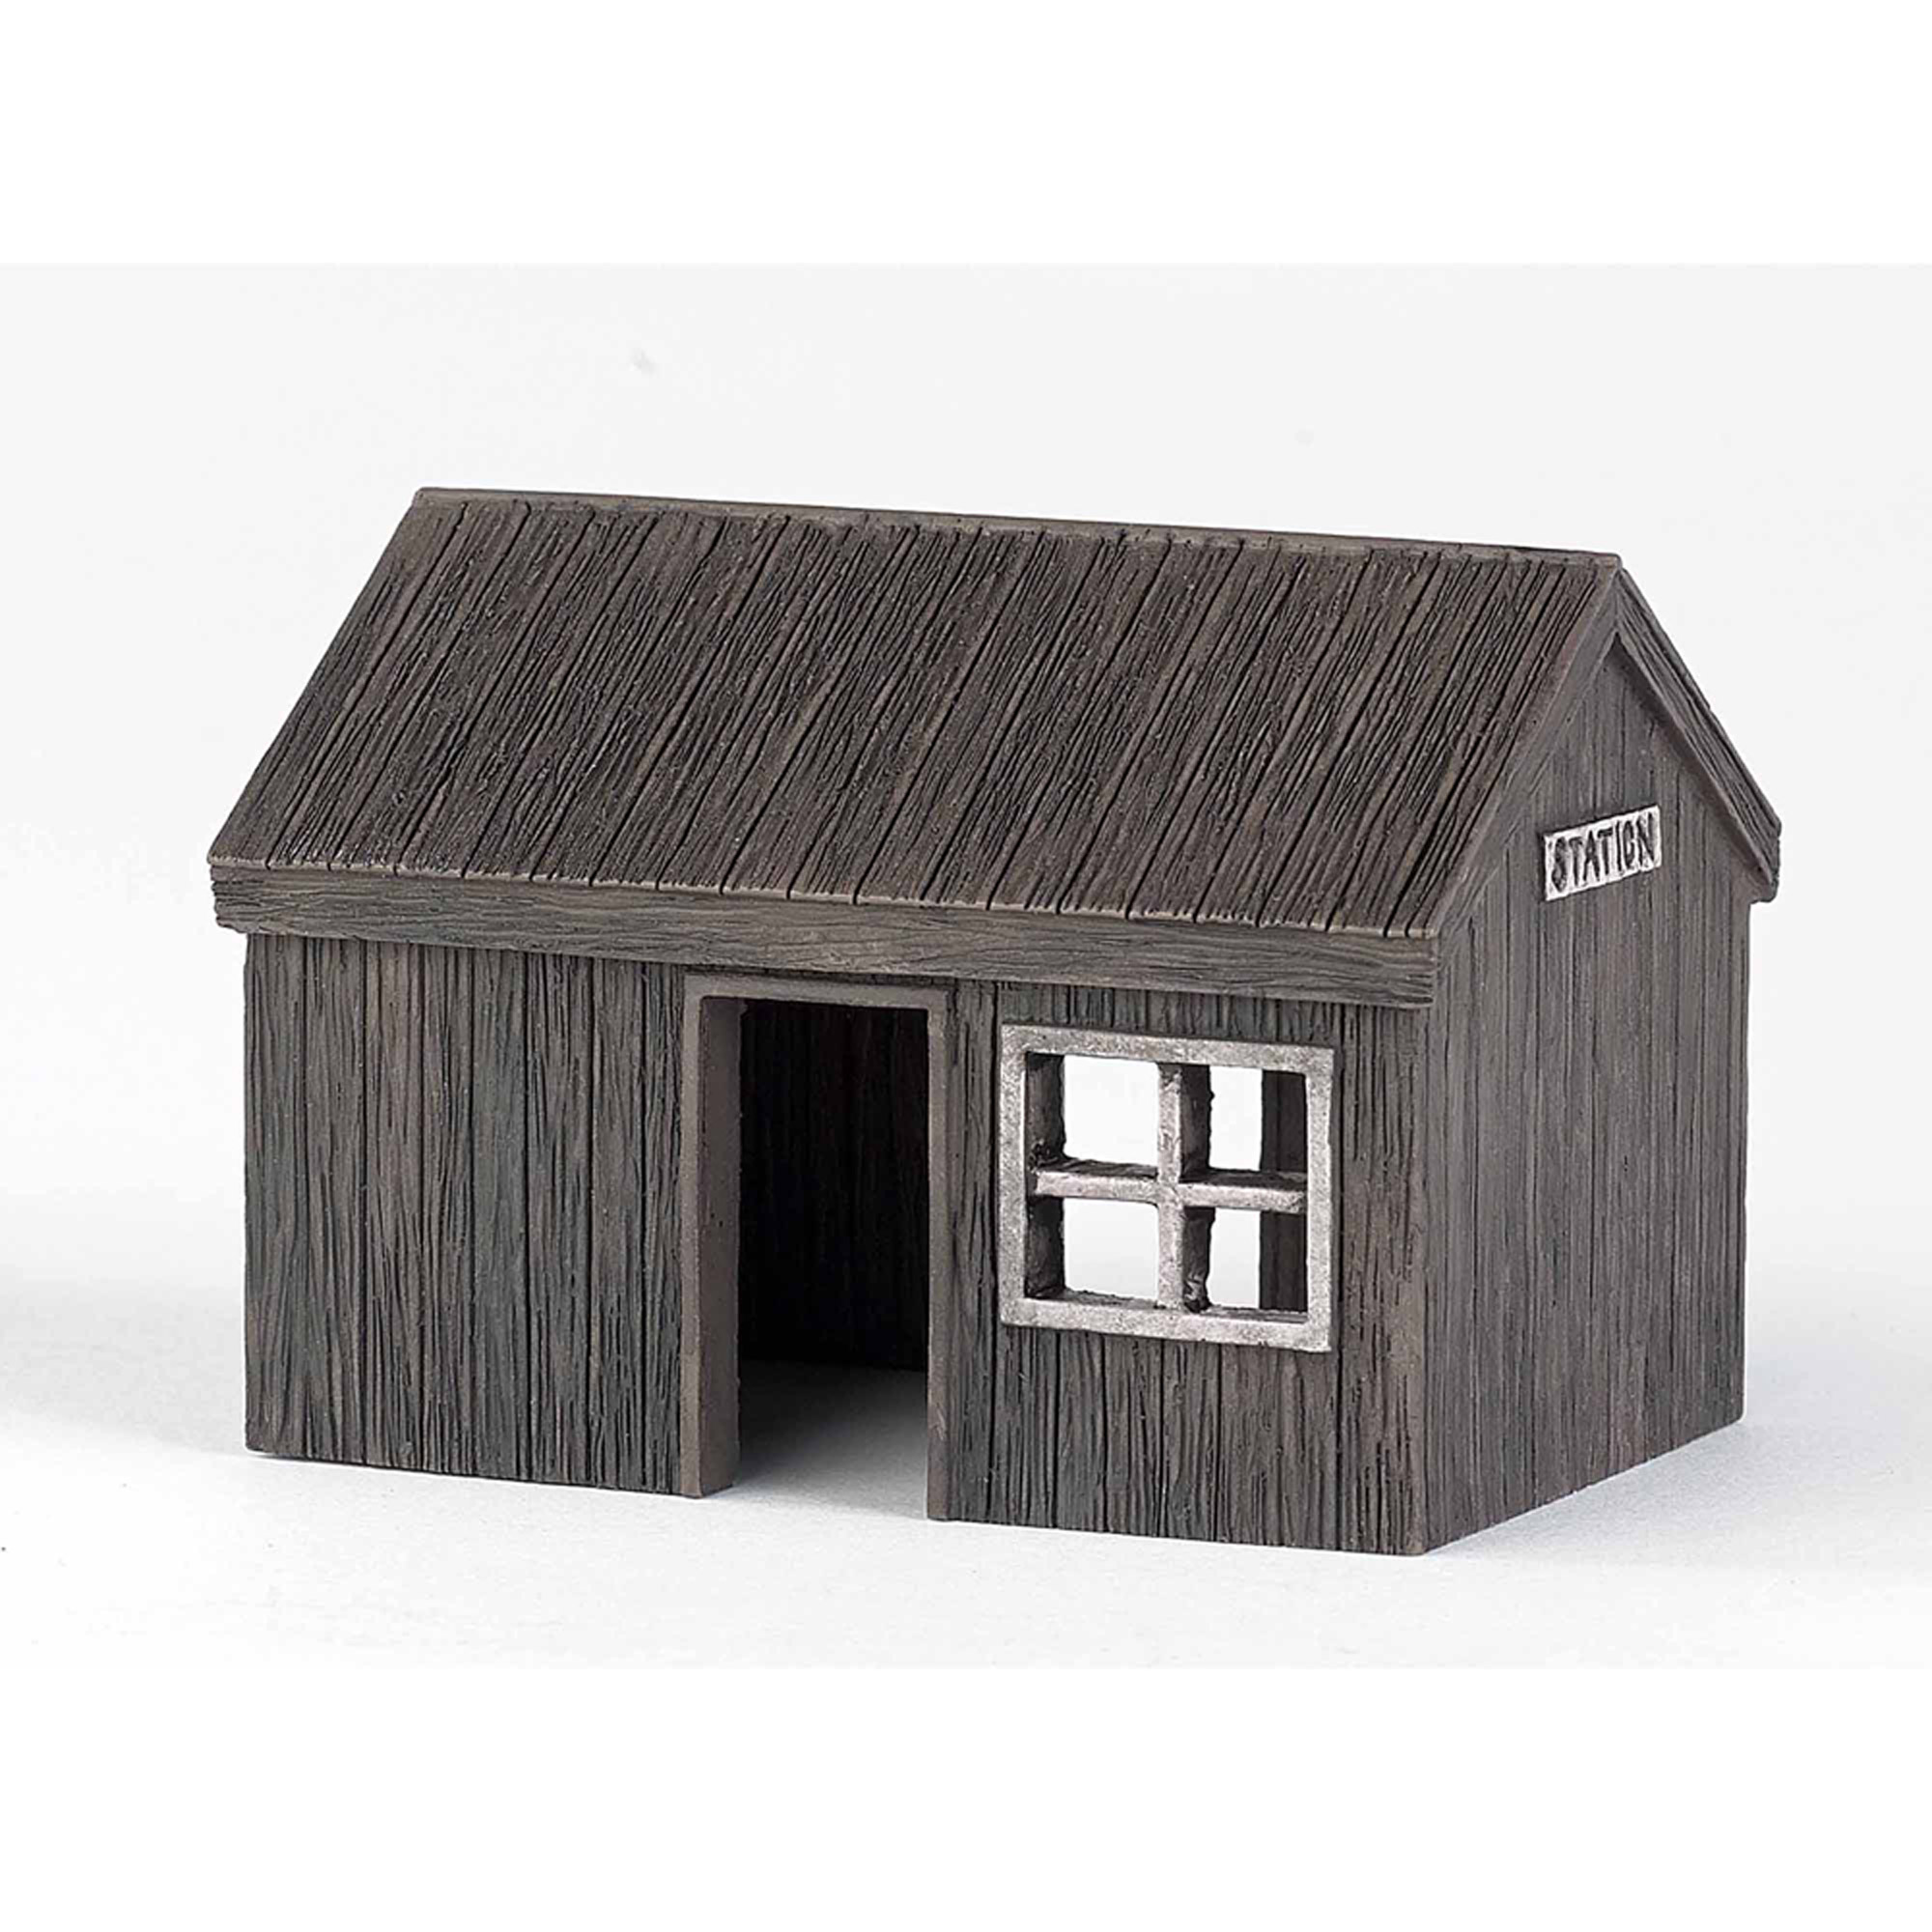 Bachmann Trains Thomas and Friends Trackside Station Resin Buildings Scenery Item, HO Scale